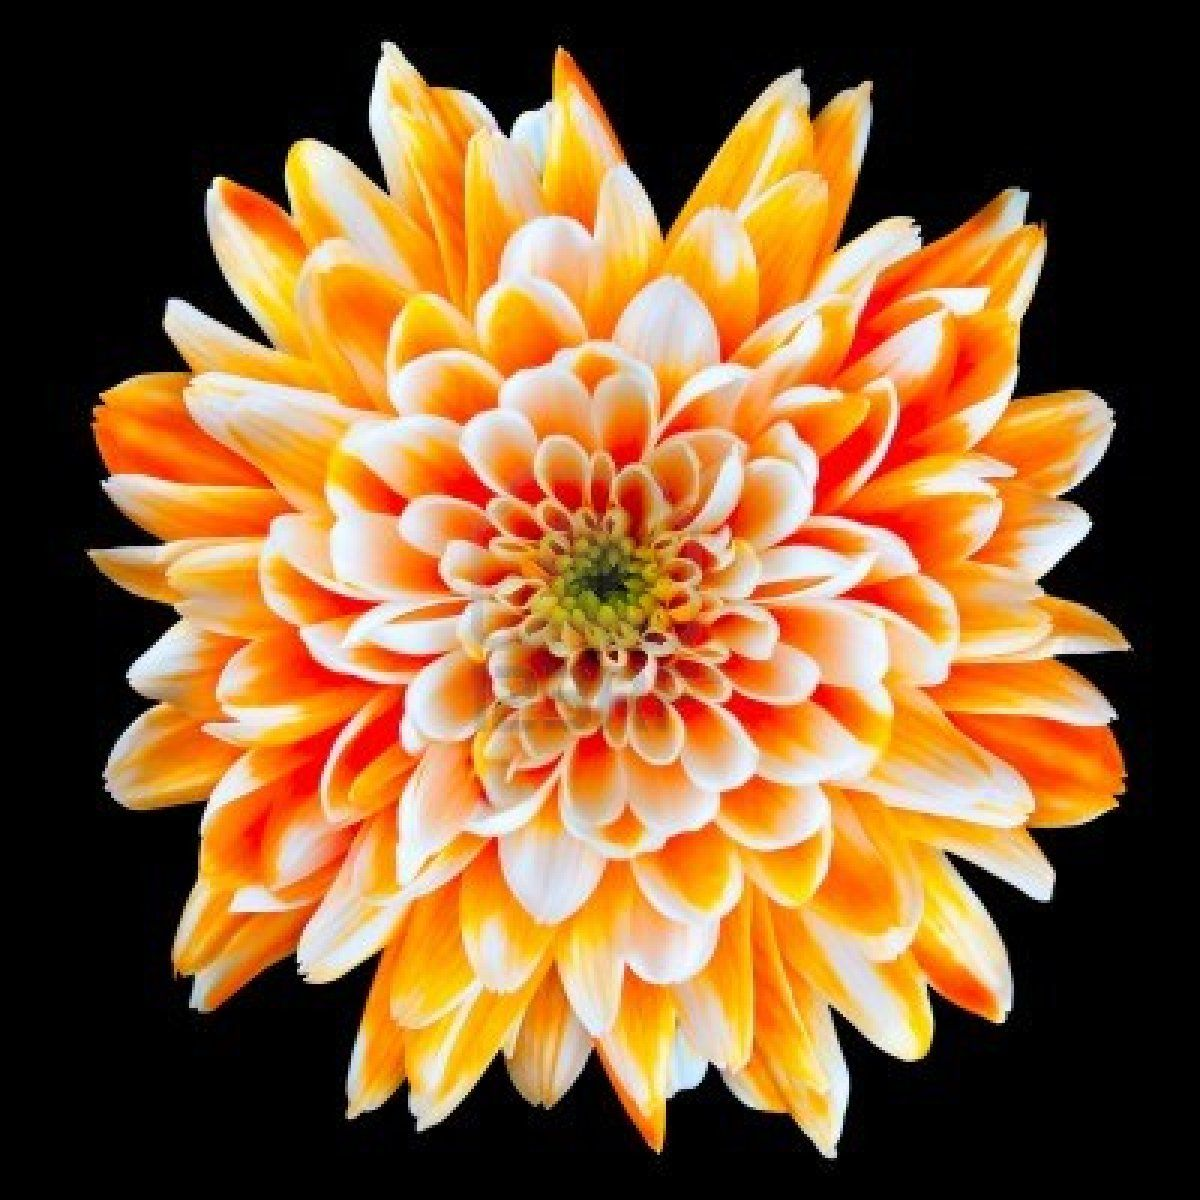 Single Orange And White Chrysanthemum Flower Isolated On Black Chrysanthemum Flower Birth Flower Tattoos Chrysanthemum Flower Pictures